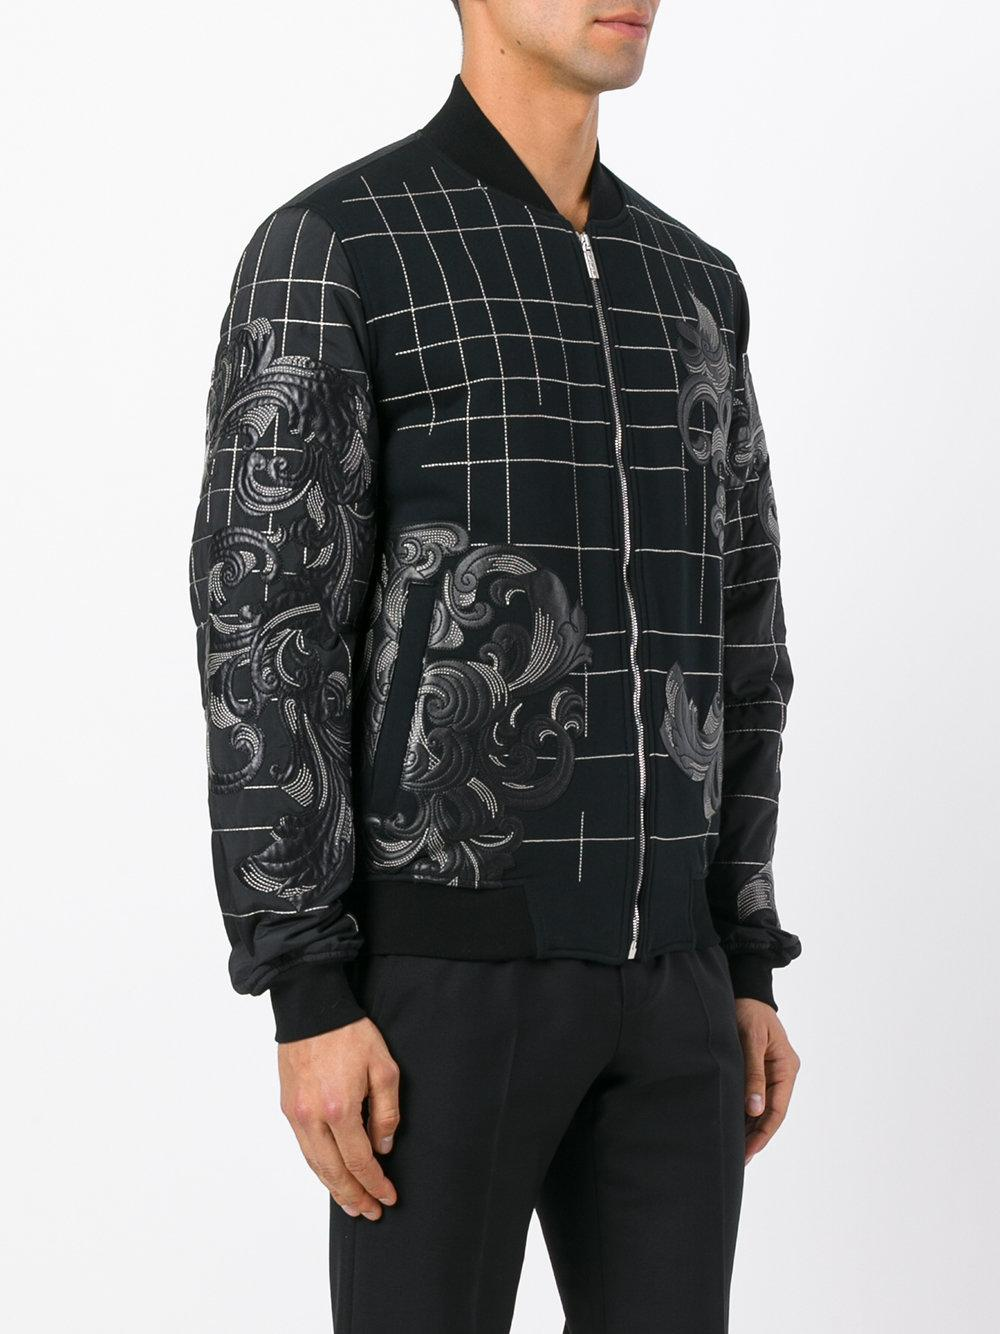 Versace Cotton Baroque Embroidered Bomber Jacket in Black for Men